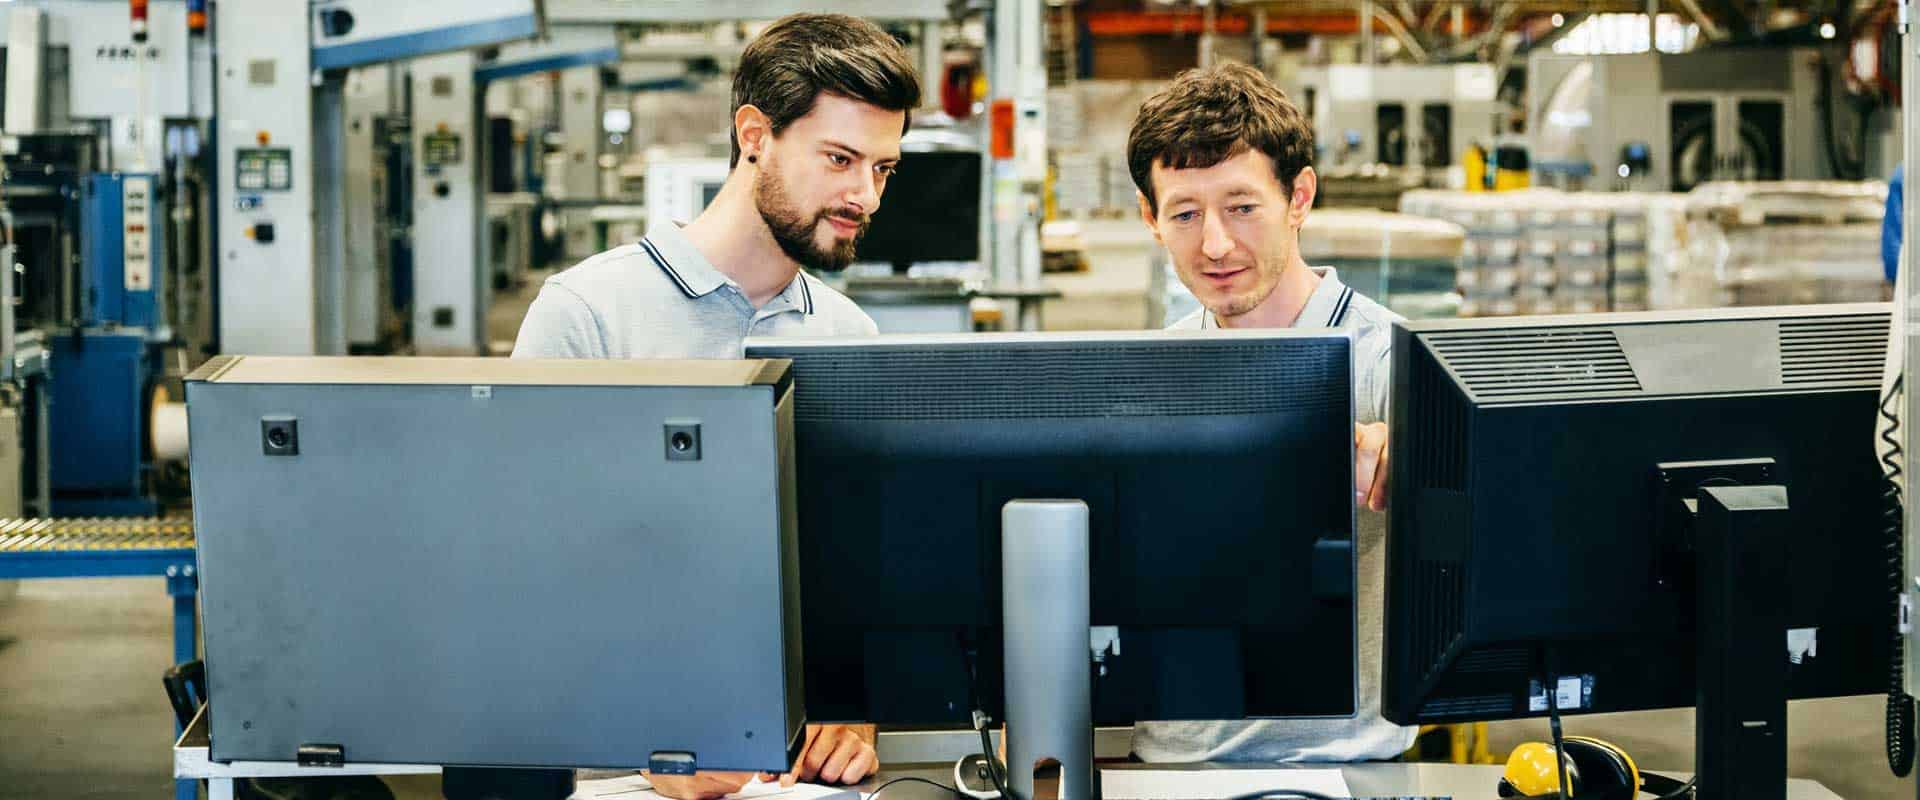 Commercial vs. Industrial Software Engineering: Differences & Key Tips Image